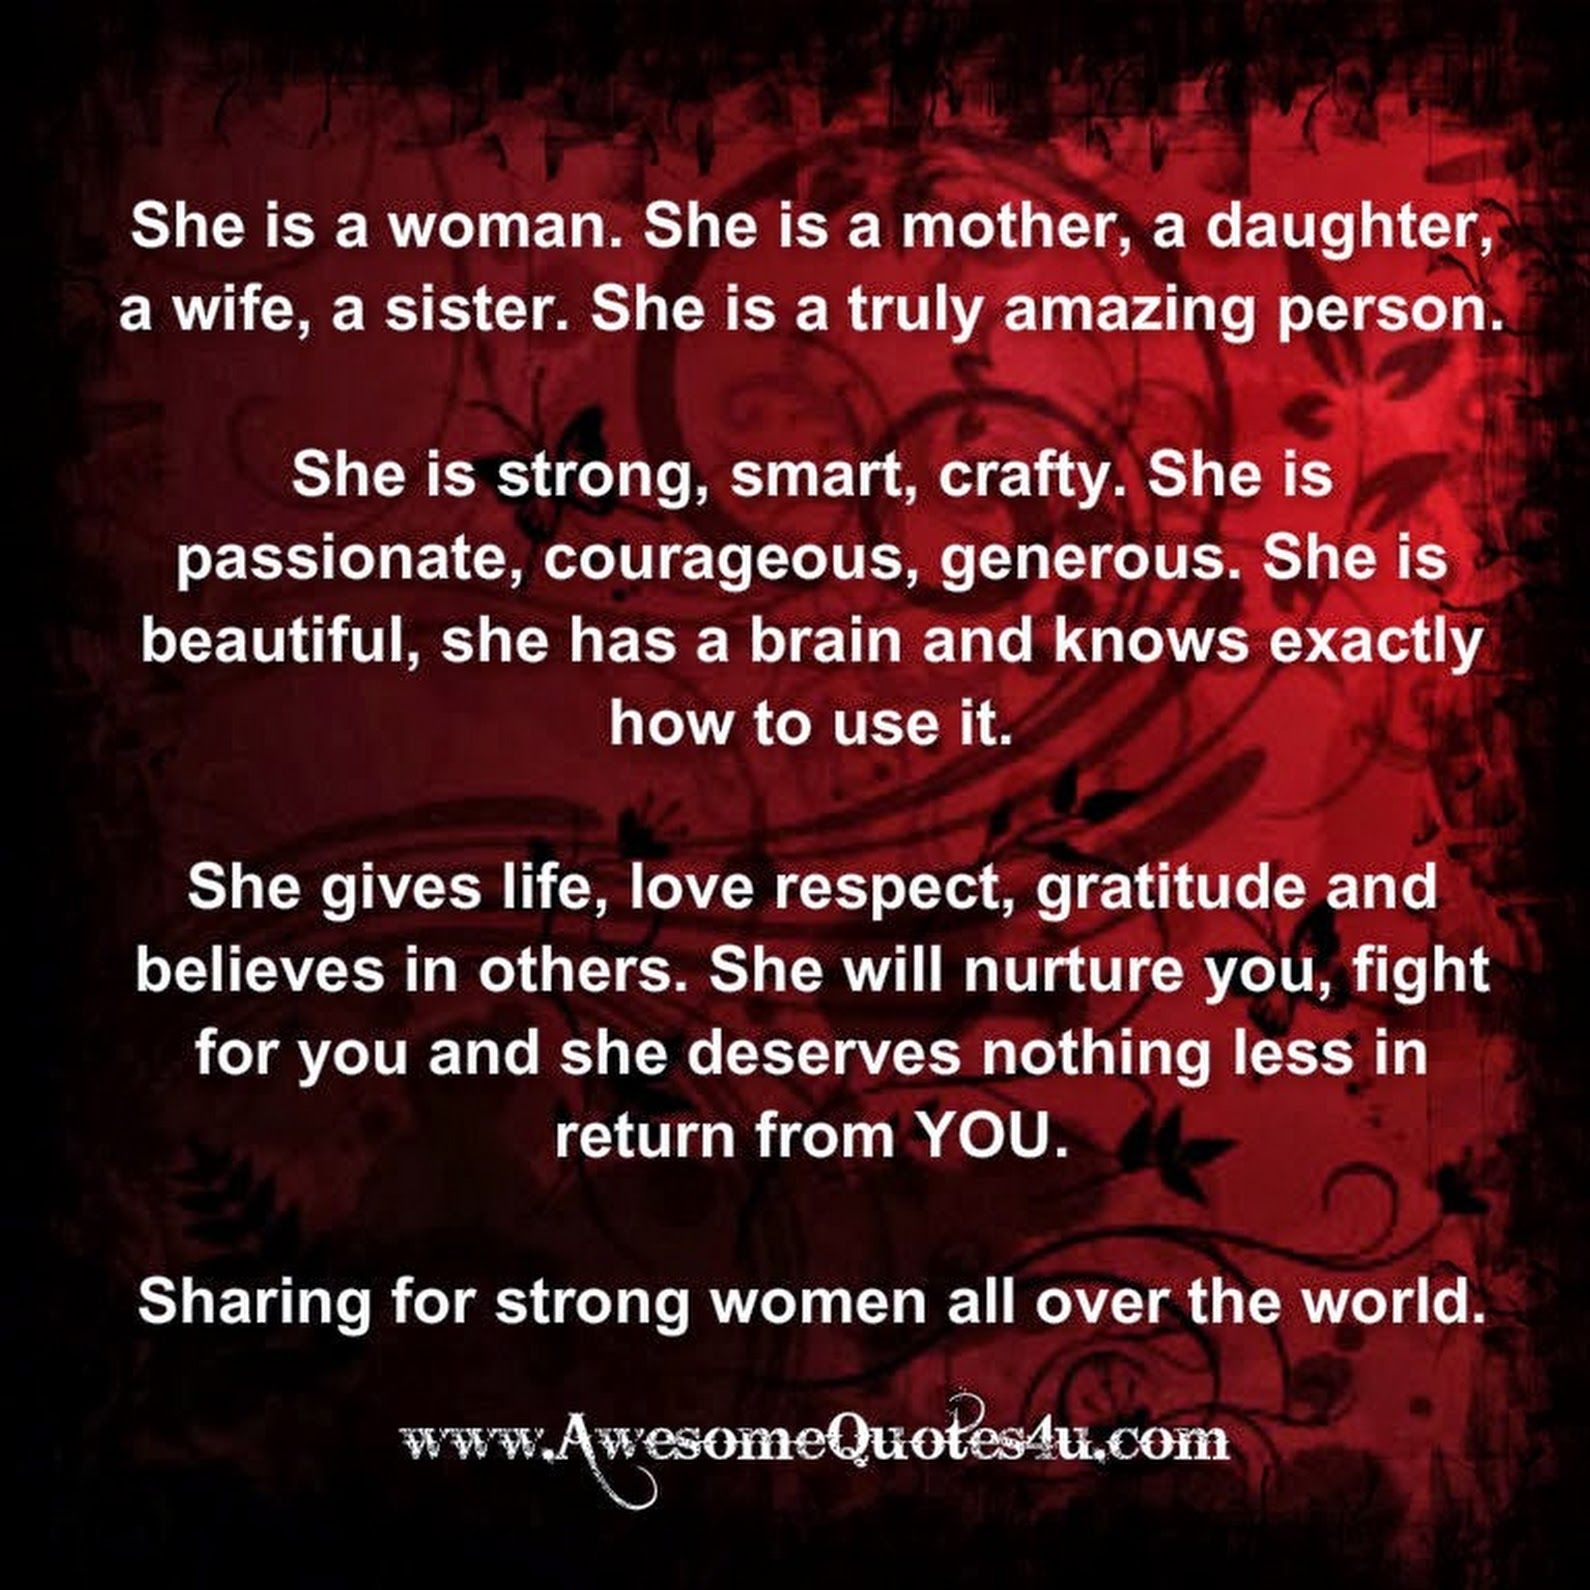 Pin by Keri Johns on life (With images) Good woman